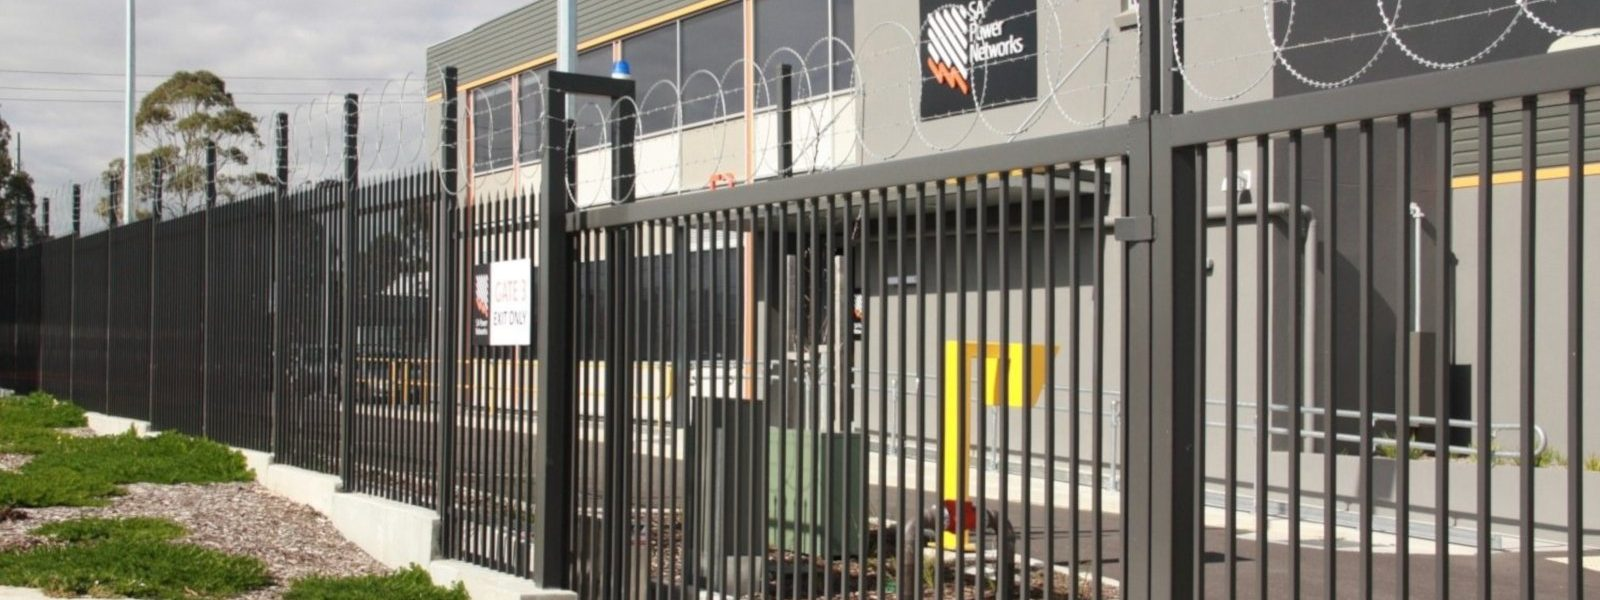 Automated Large Gate topped with barbed wire and razor rings at SA power networks